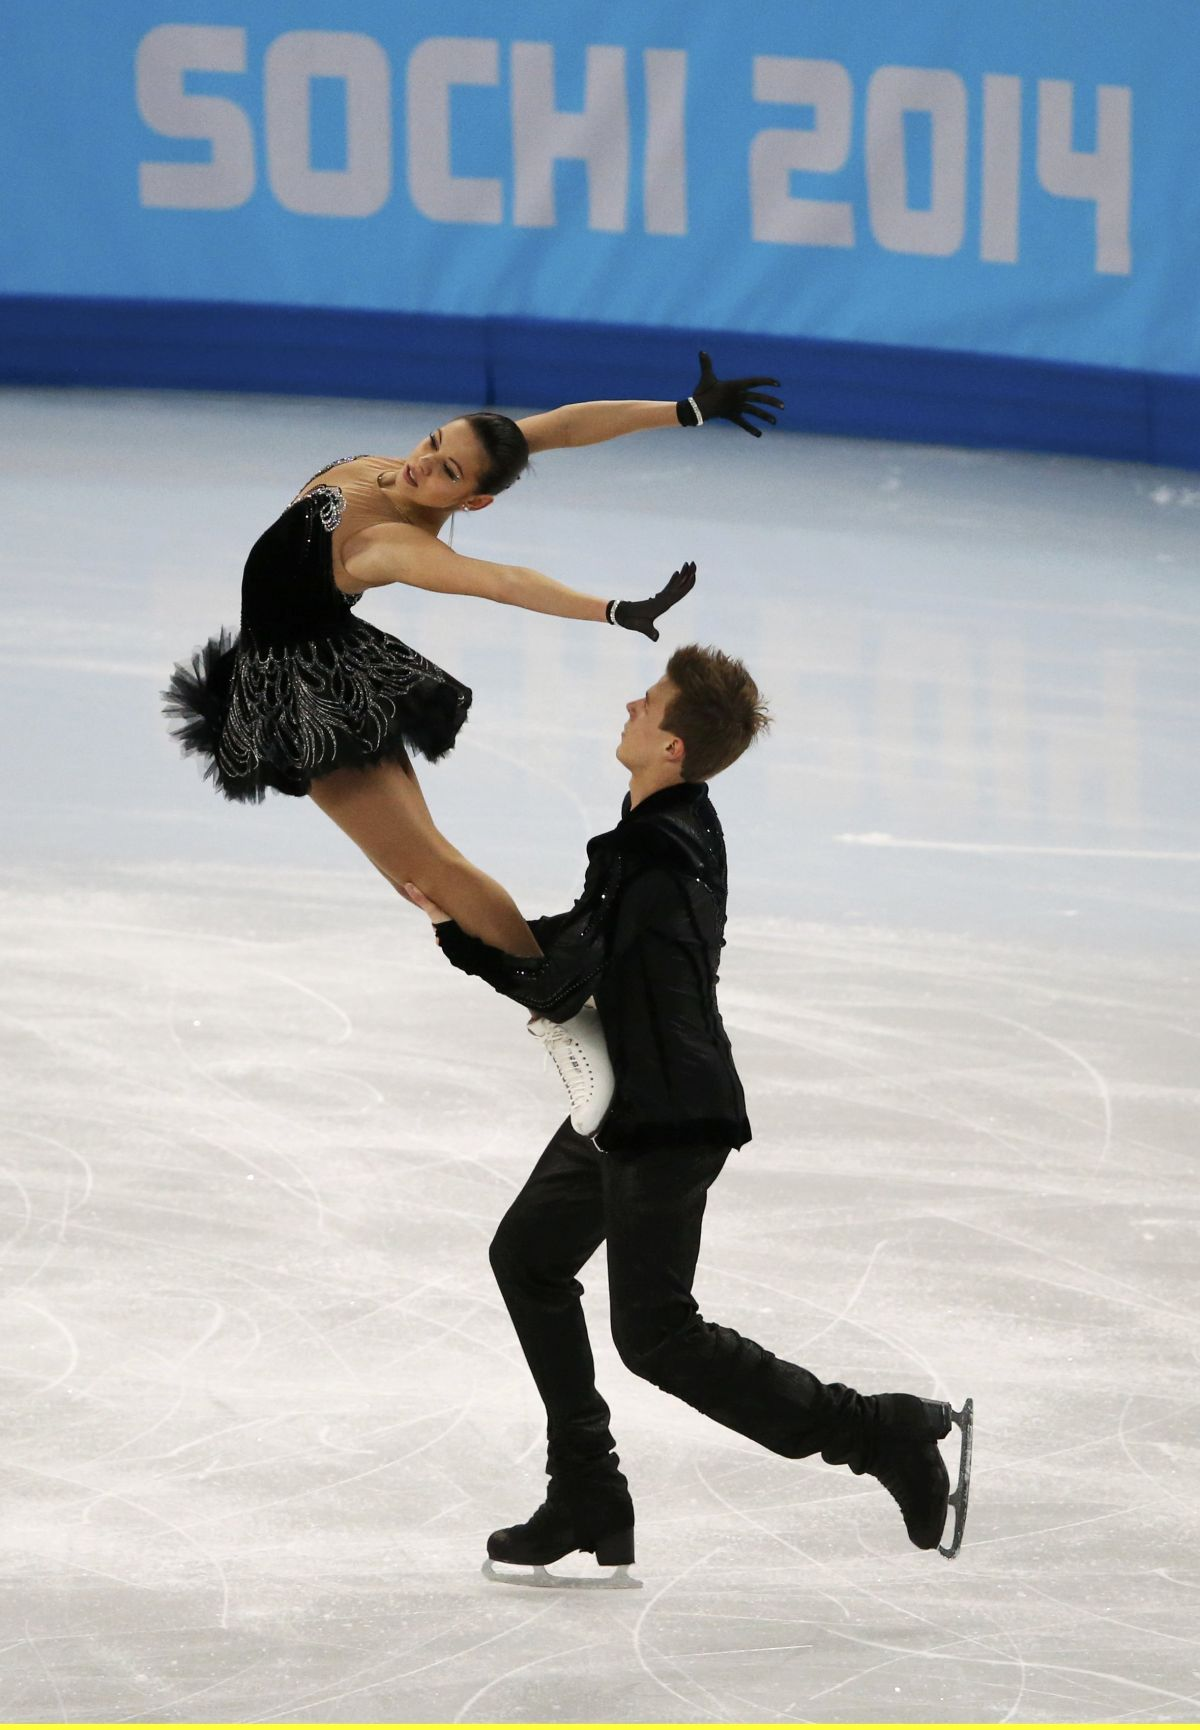 ELENA ILINYKH and Nikita Katsalapov at 2014 Winter Olympics in SochiIlinykh Katsalapov